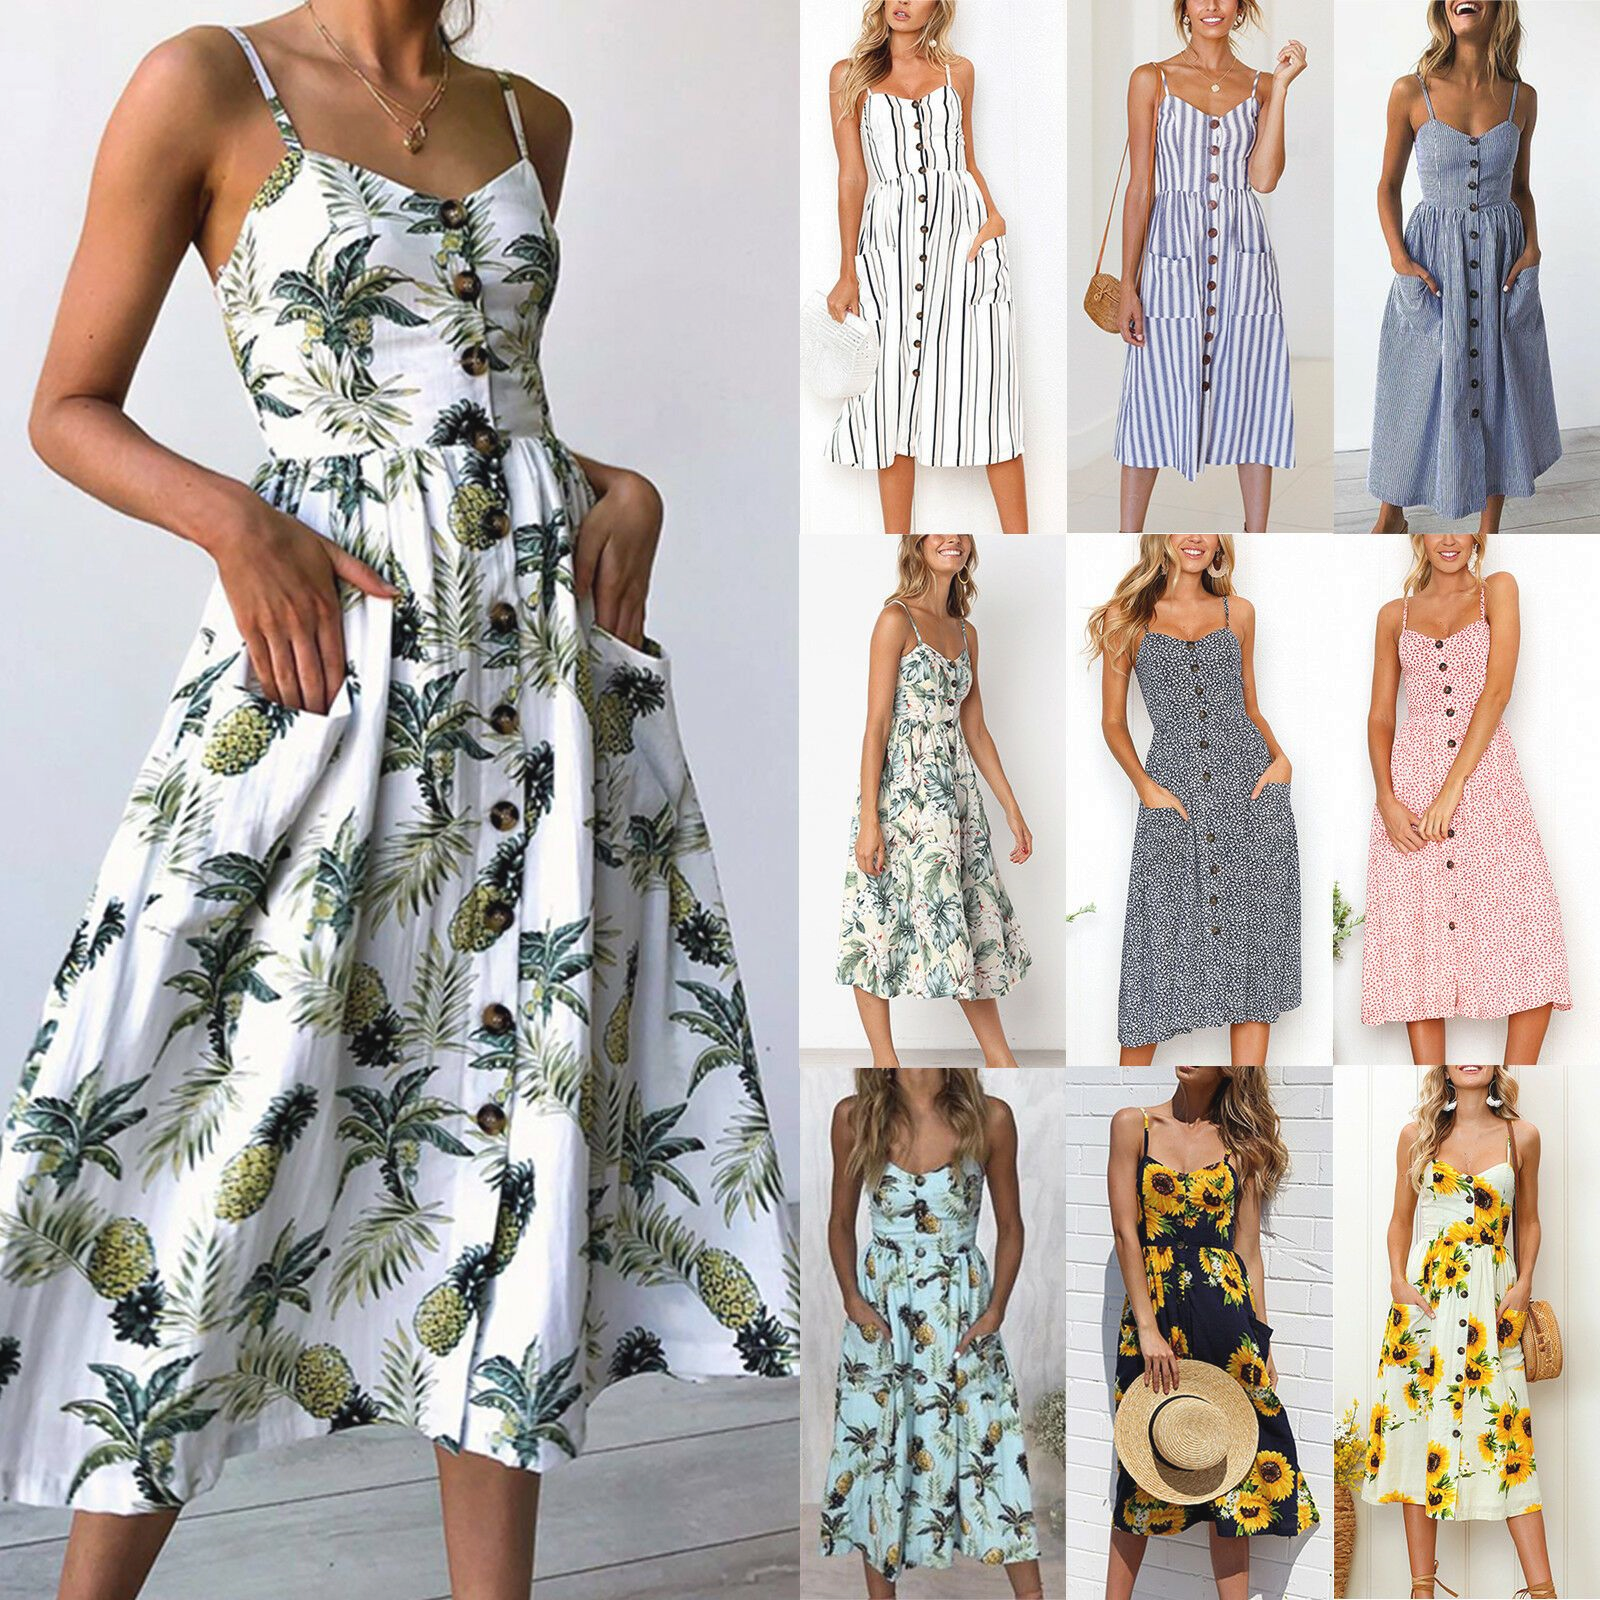 Trendy Summer Dresses Dresses Summer Trendy Source By Modeoutfitsfrauen44 Girl Out In 2020 Short Summer Dresses Trendy Dresses Summer Summer Dresses For Women